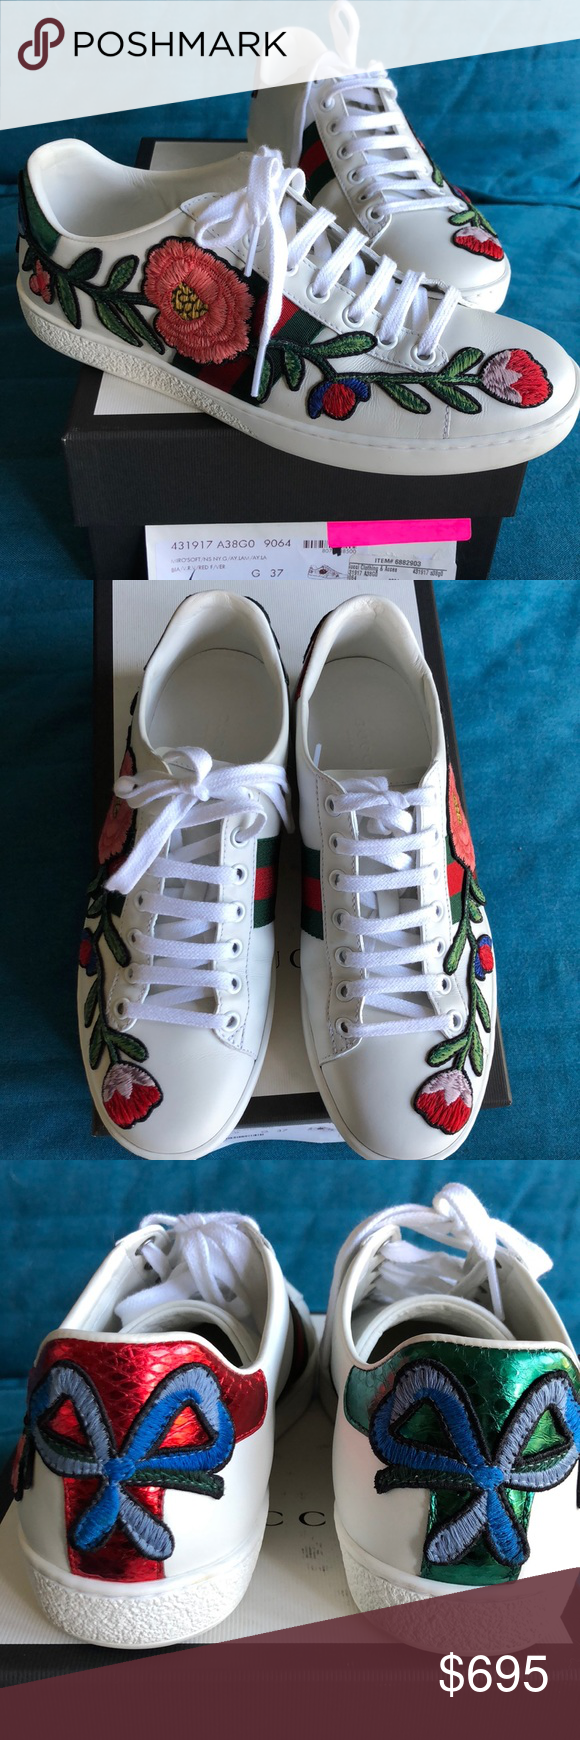 51b8ca30974 GUCCI New Ace Floral Embroidered Sneakers 37 100% AUTHENTIC Intricately  designed floral embroidery around the